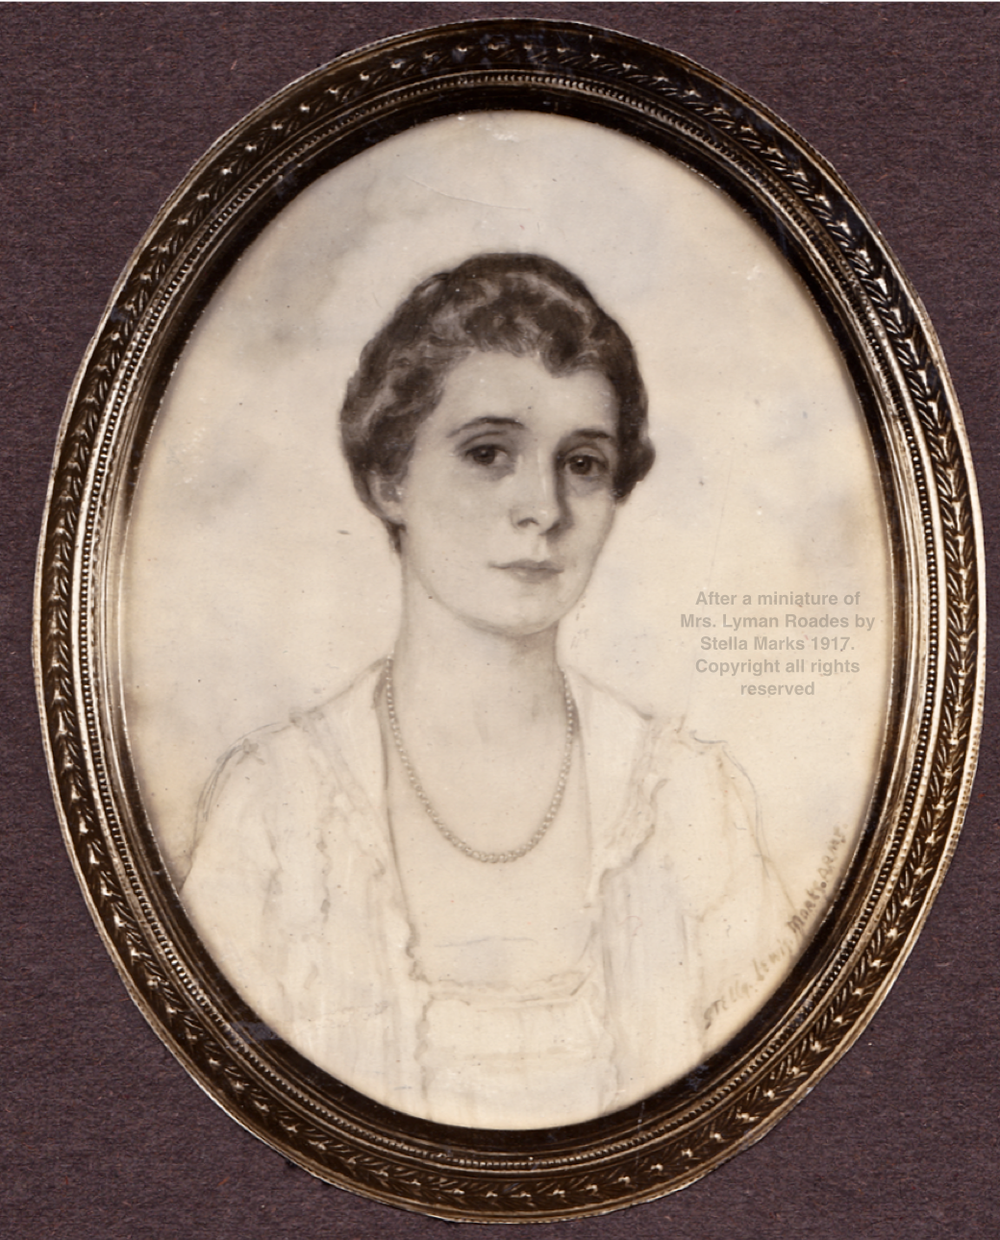 After a miniature of Mrs. Lyman Roades by Stella Marks 1917. Copyright Stella Marks' Estate all rights reserved